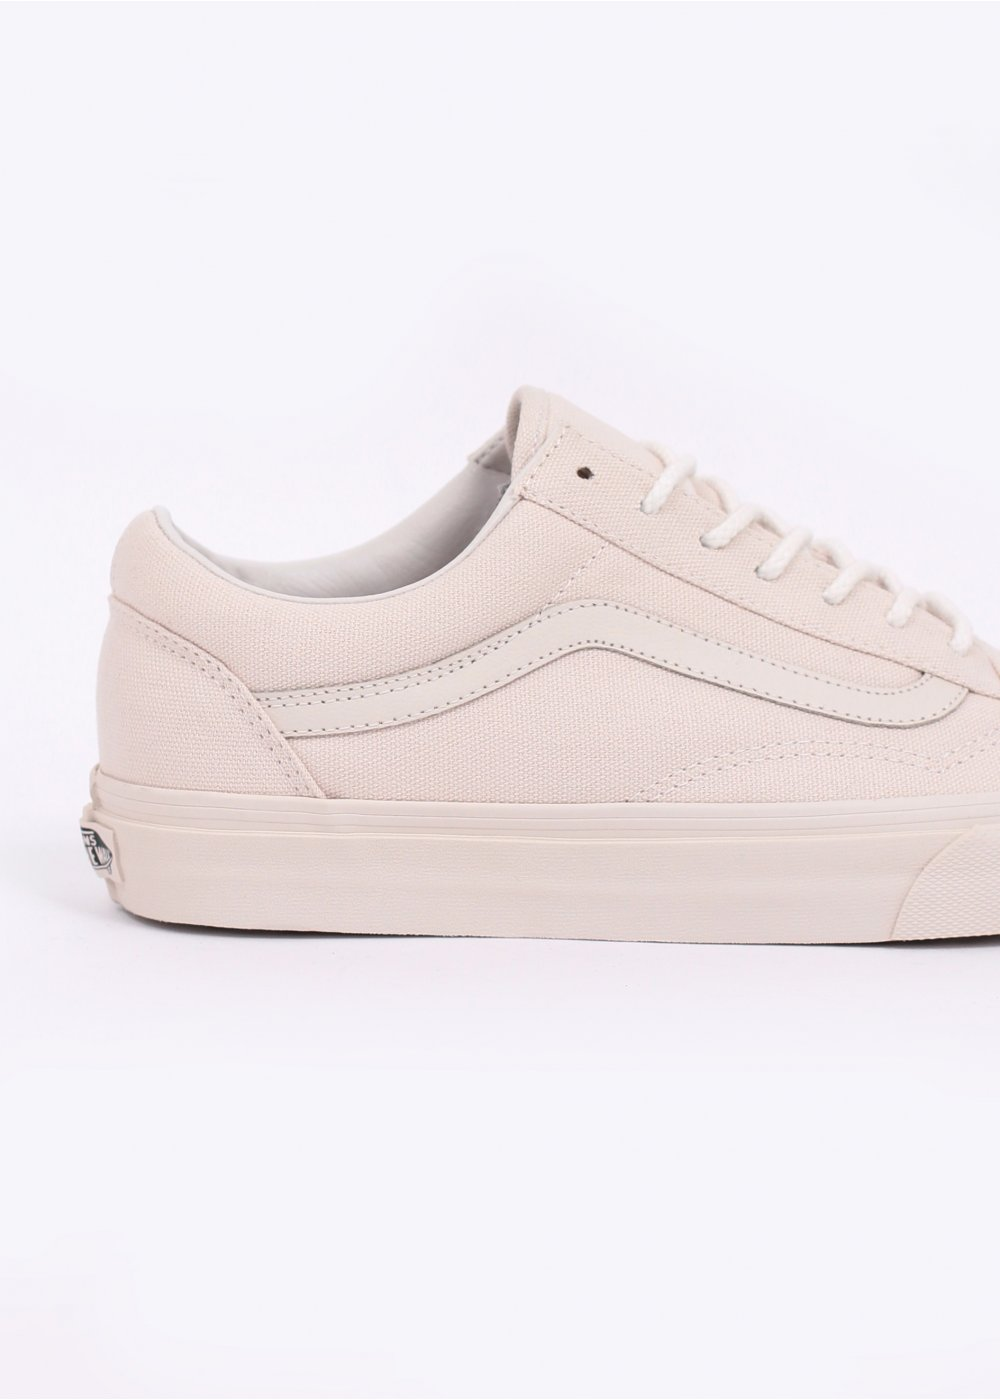 a6e6e2be0d vans old skool cream off 56% - www.jlbmoto.com